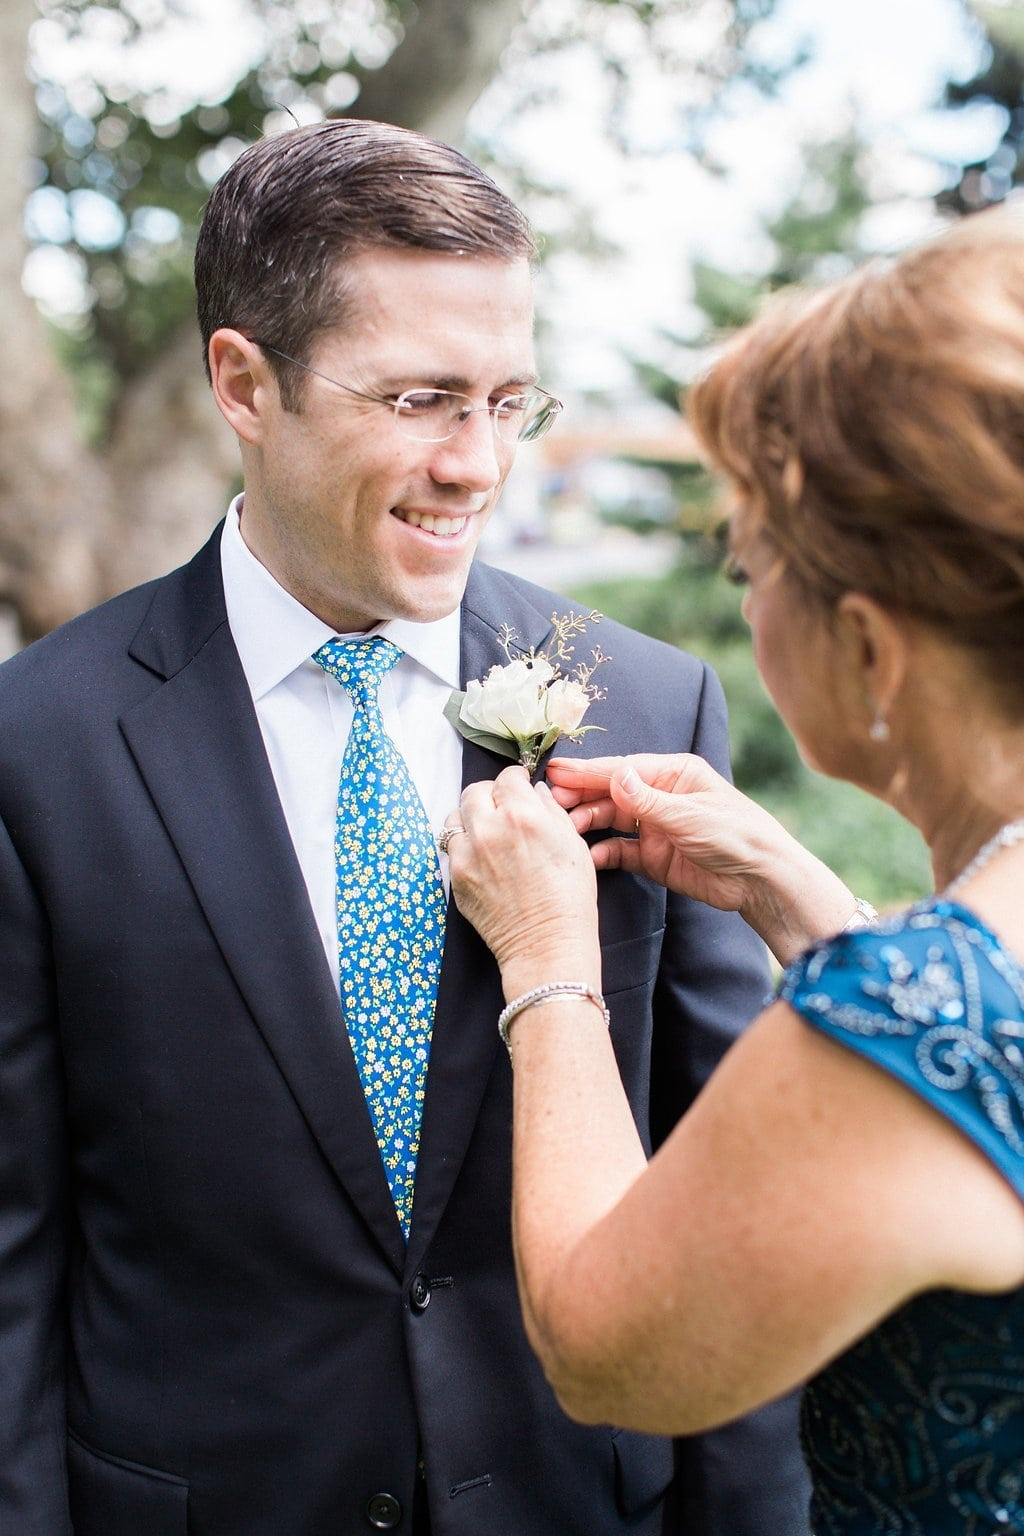 Groom getting boutonnière pinned on by mother at St. Anselm Catholic Church - 1920's inspired wedding Grand Concourse